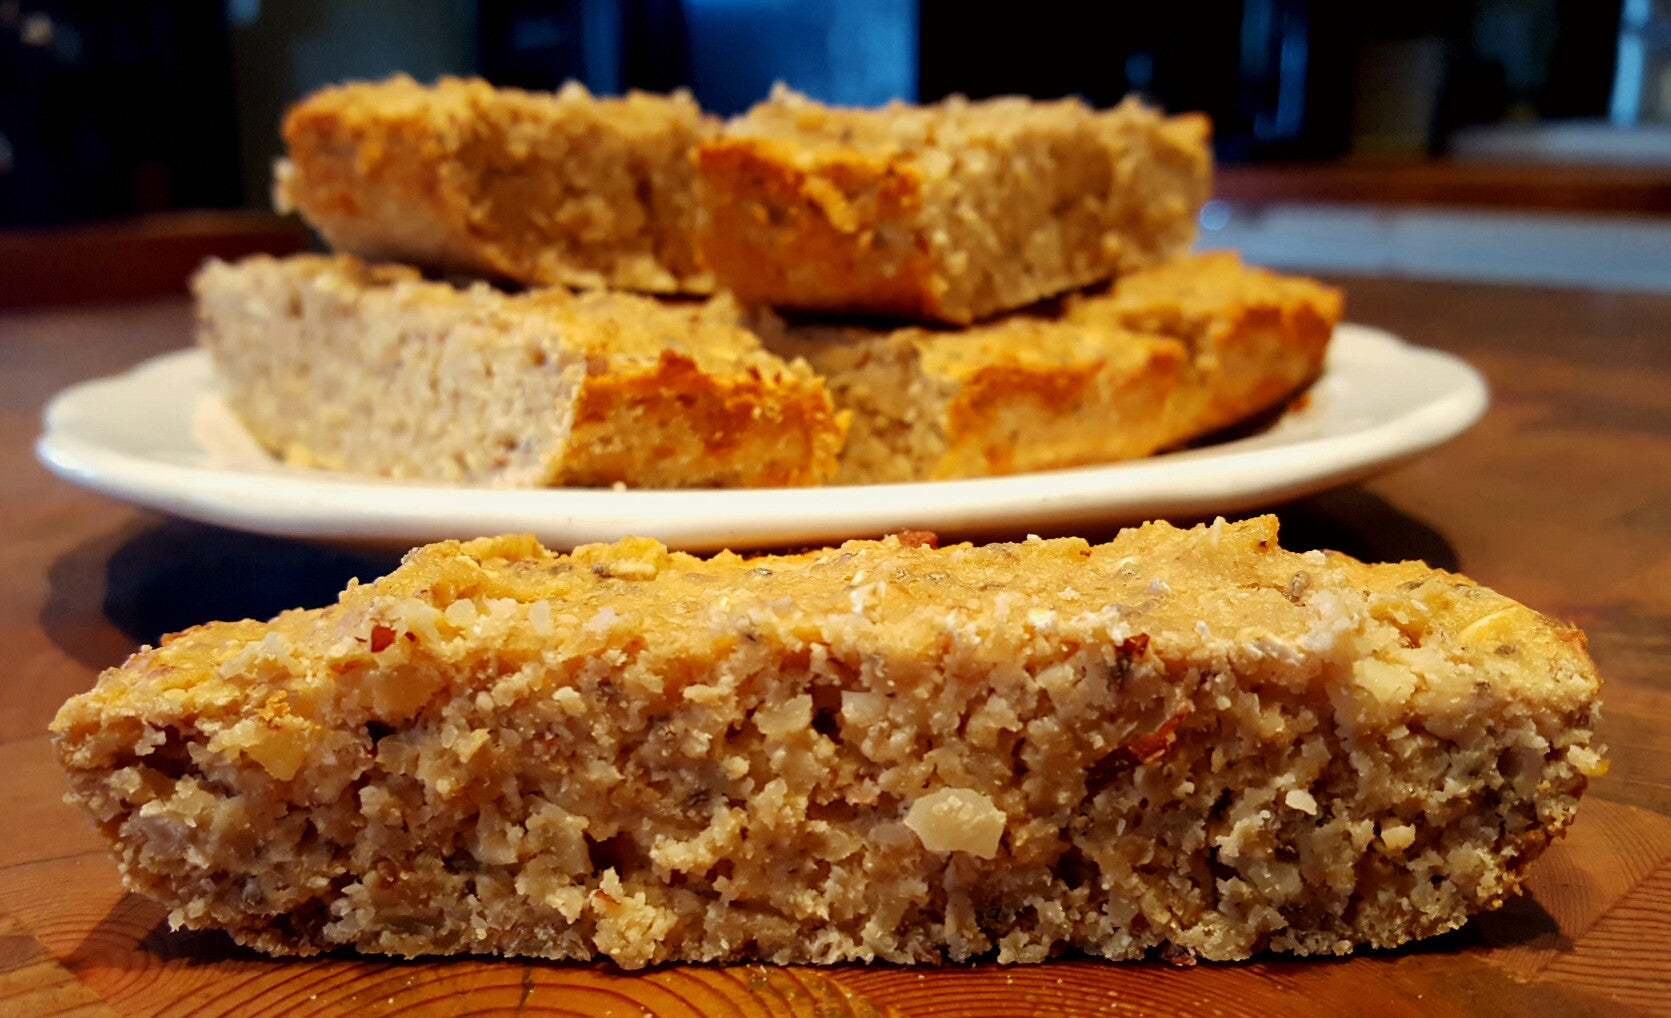 Banana Nut Protein Bars